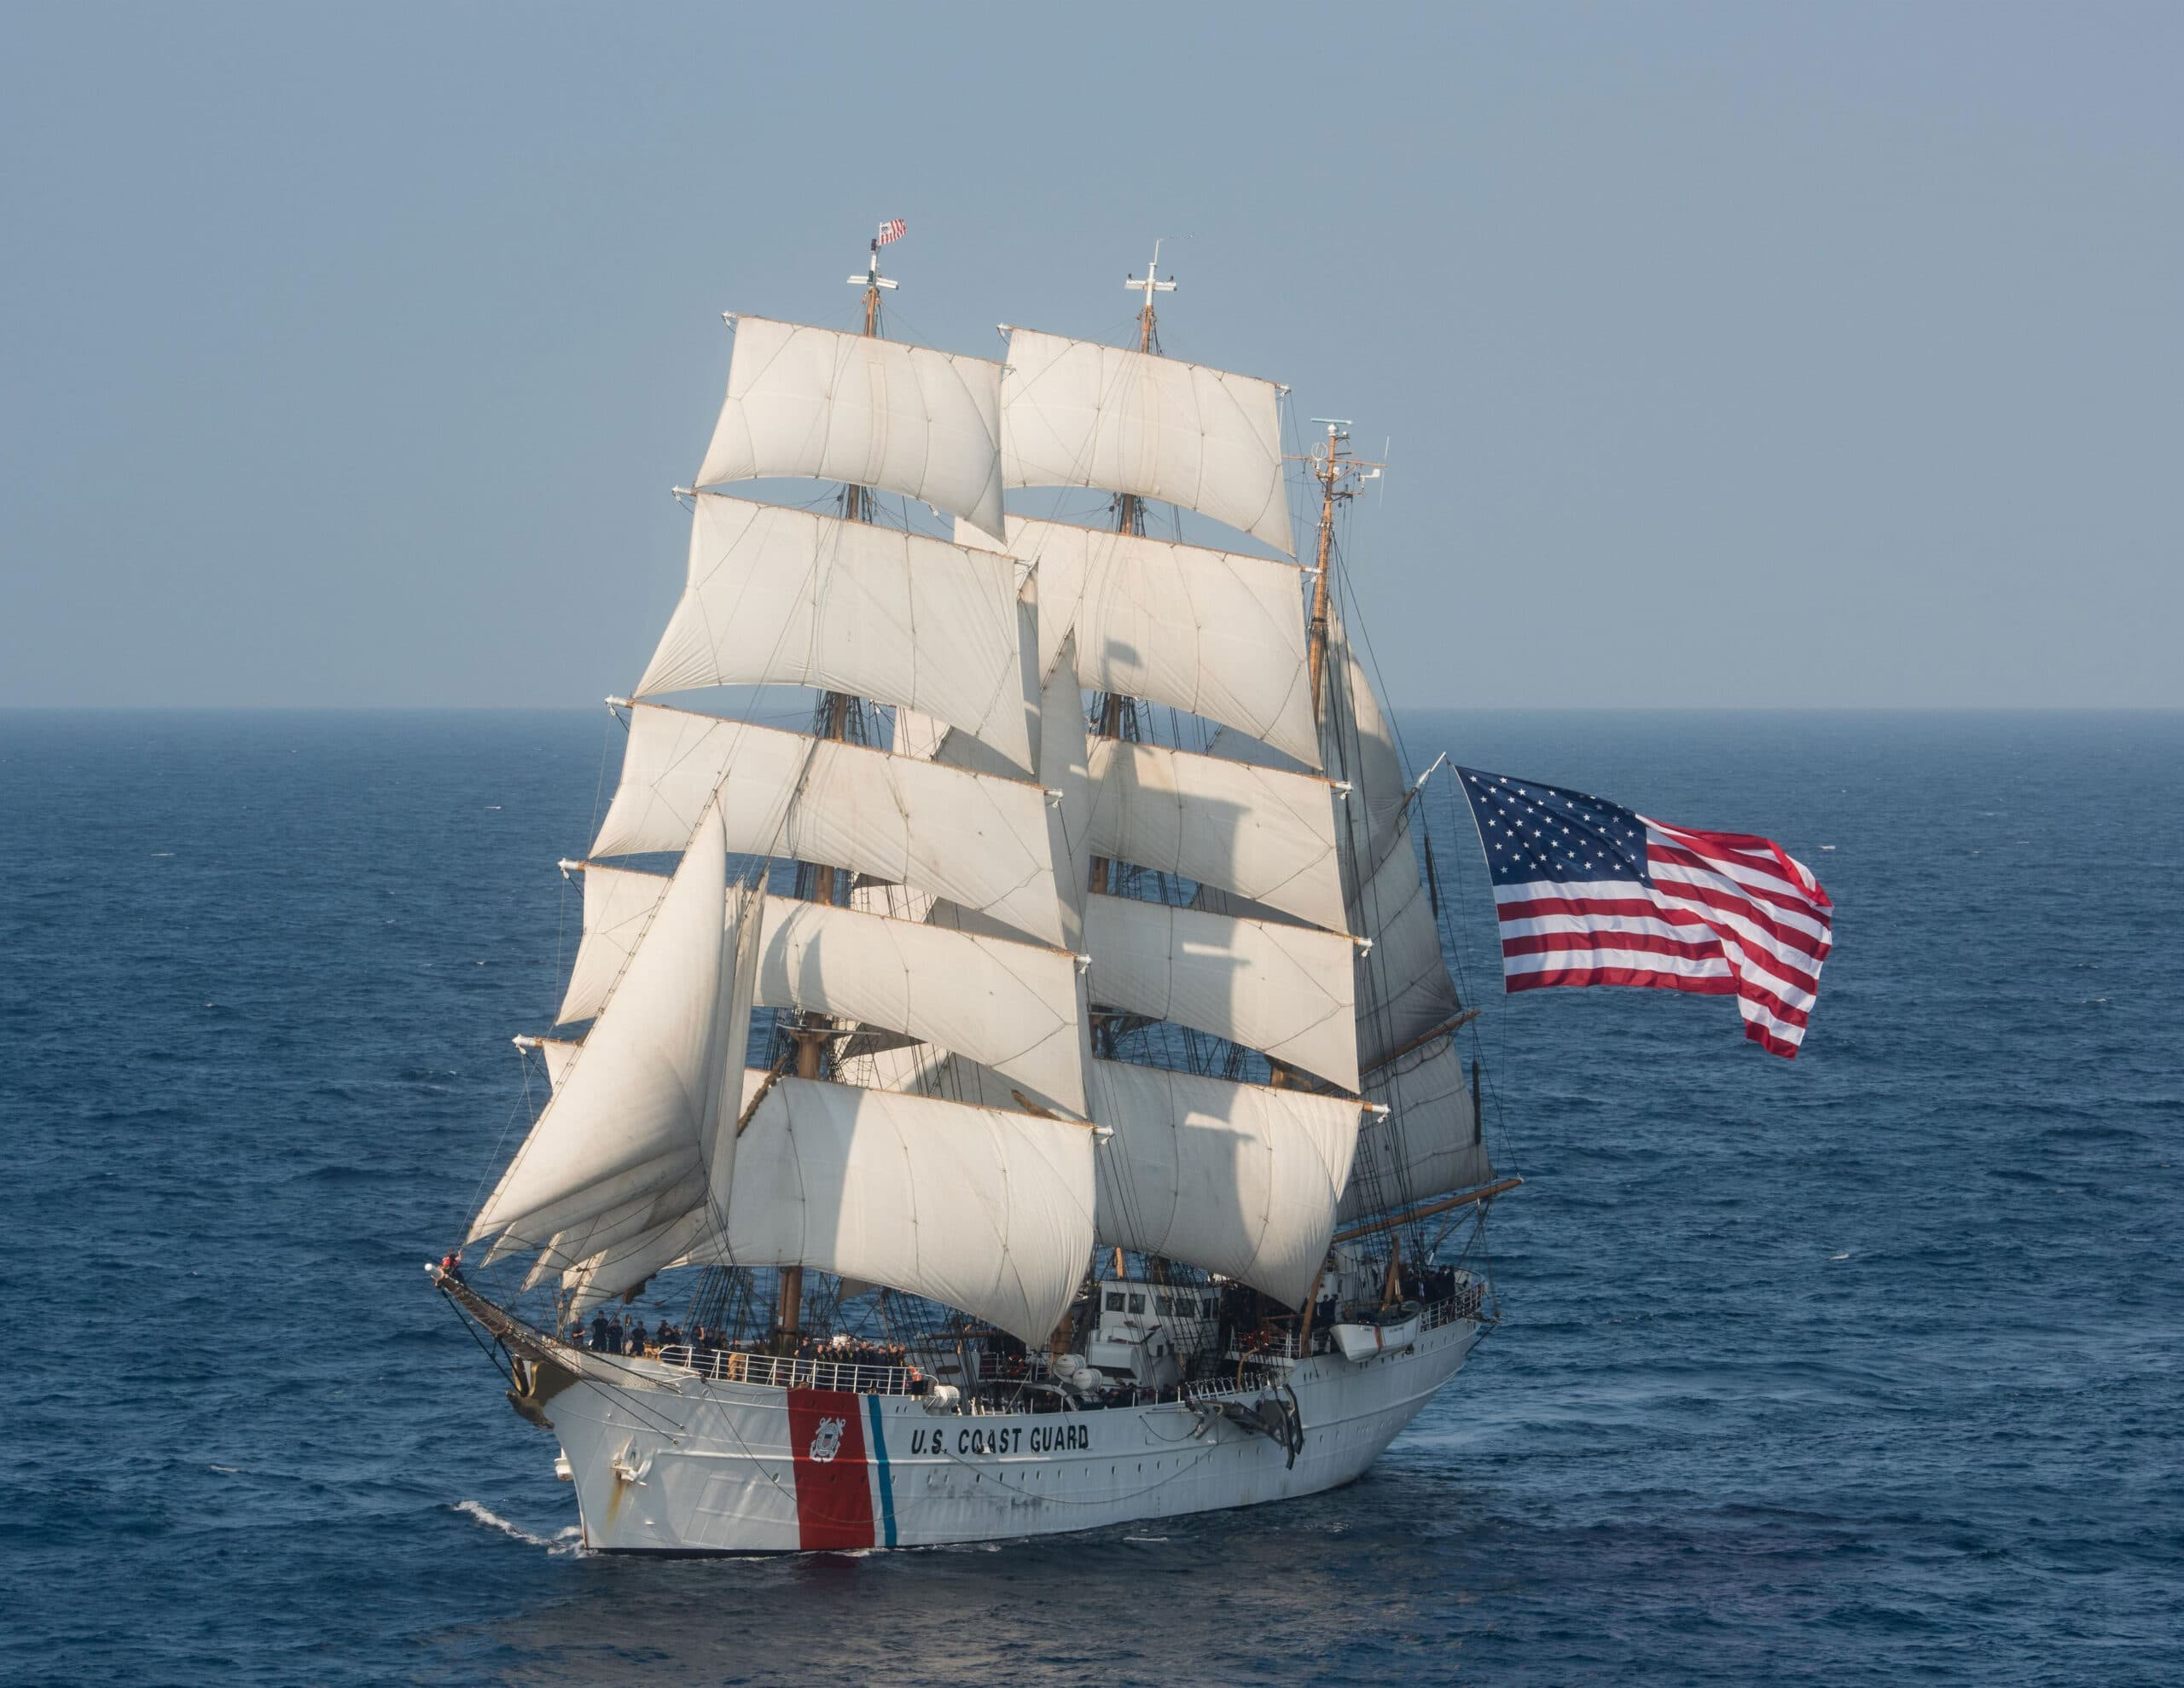 The United States Coast Guard Barque Eagle is the only active commissioned sailing vessel in American military service.